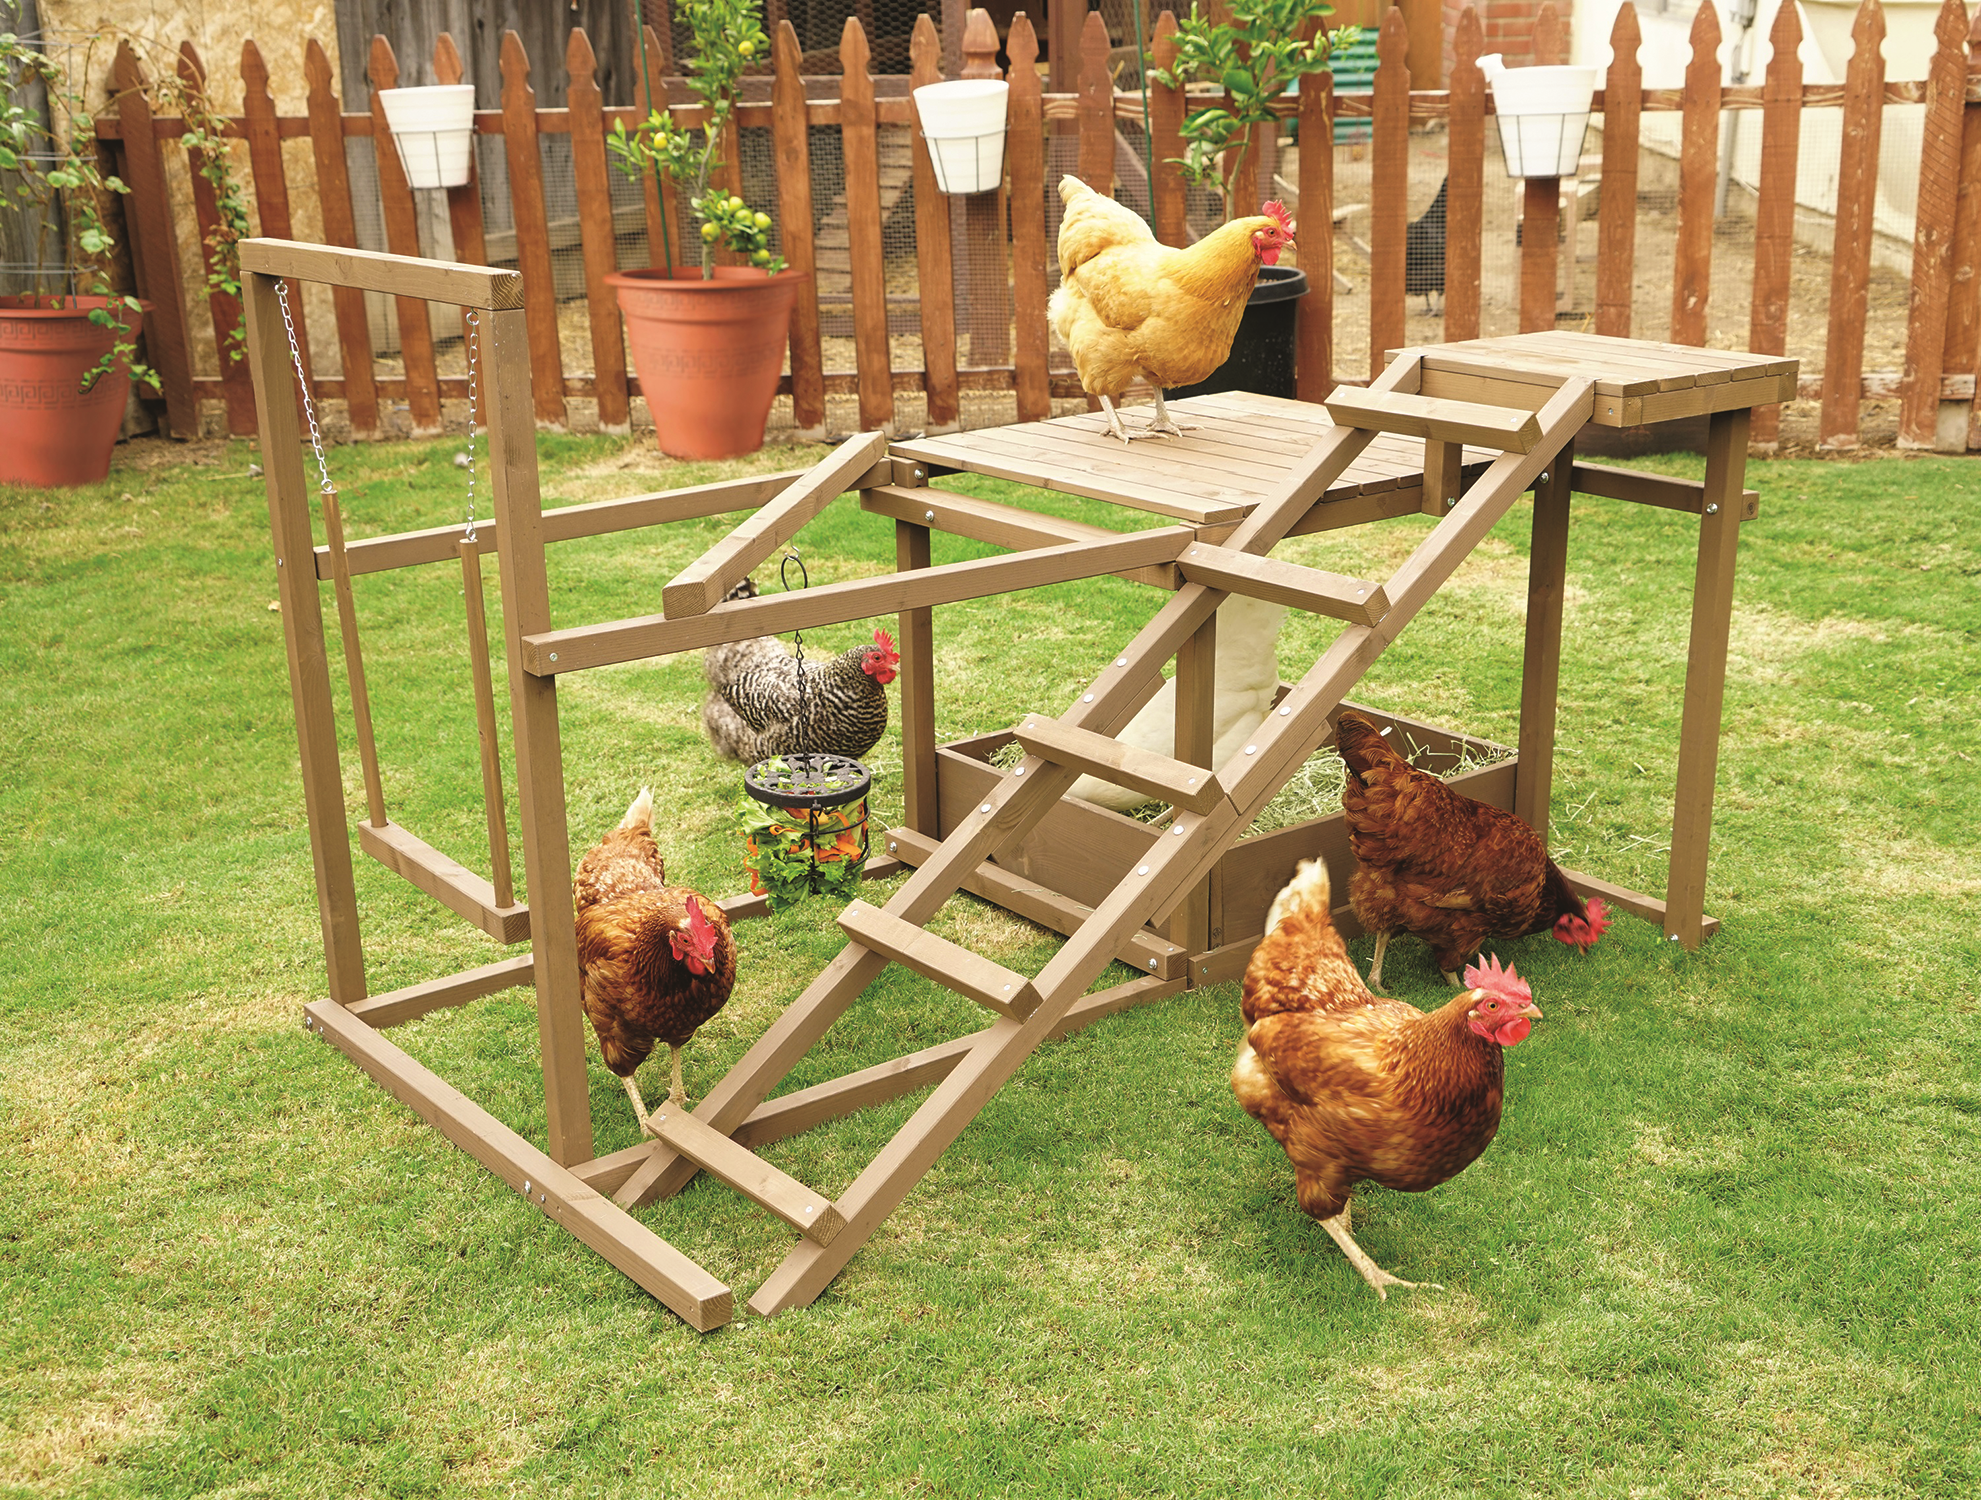 Activity Center For Chickens The Innovation Pet Chicken Activity Center Is A Fun And Unique Activity Cen Chickens Backyard Pet Chickens Urban Chicken Farming